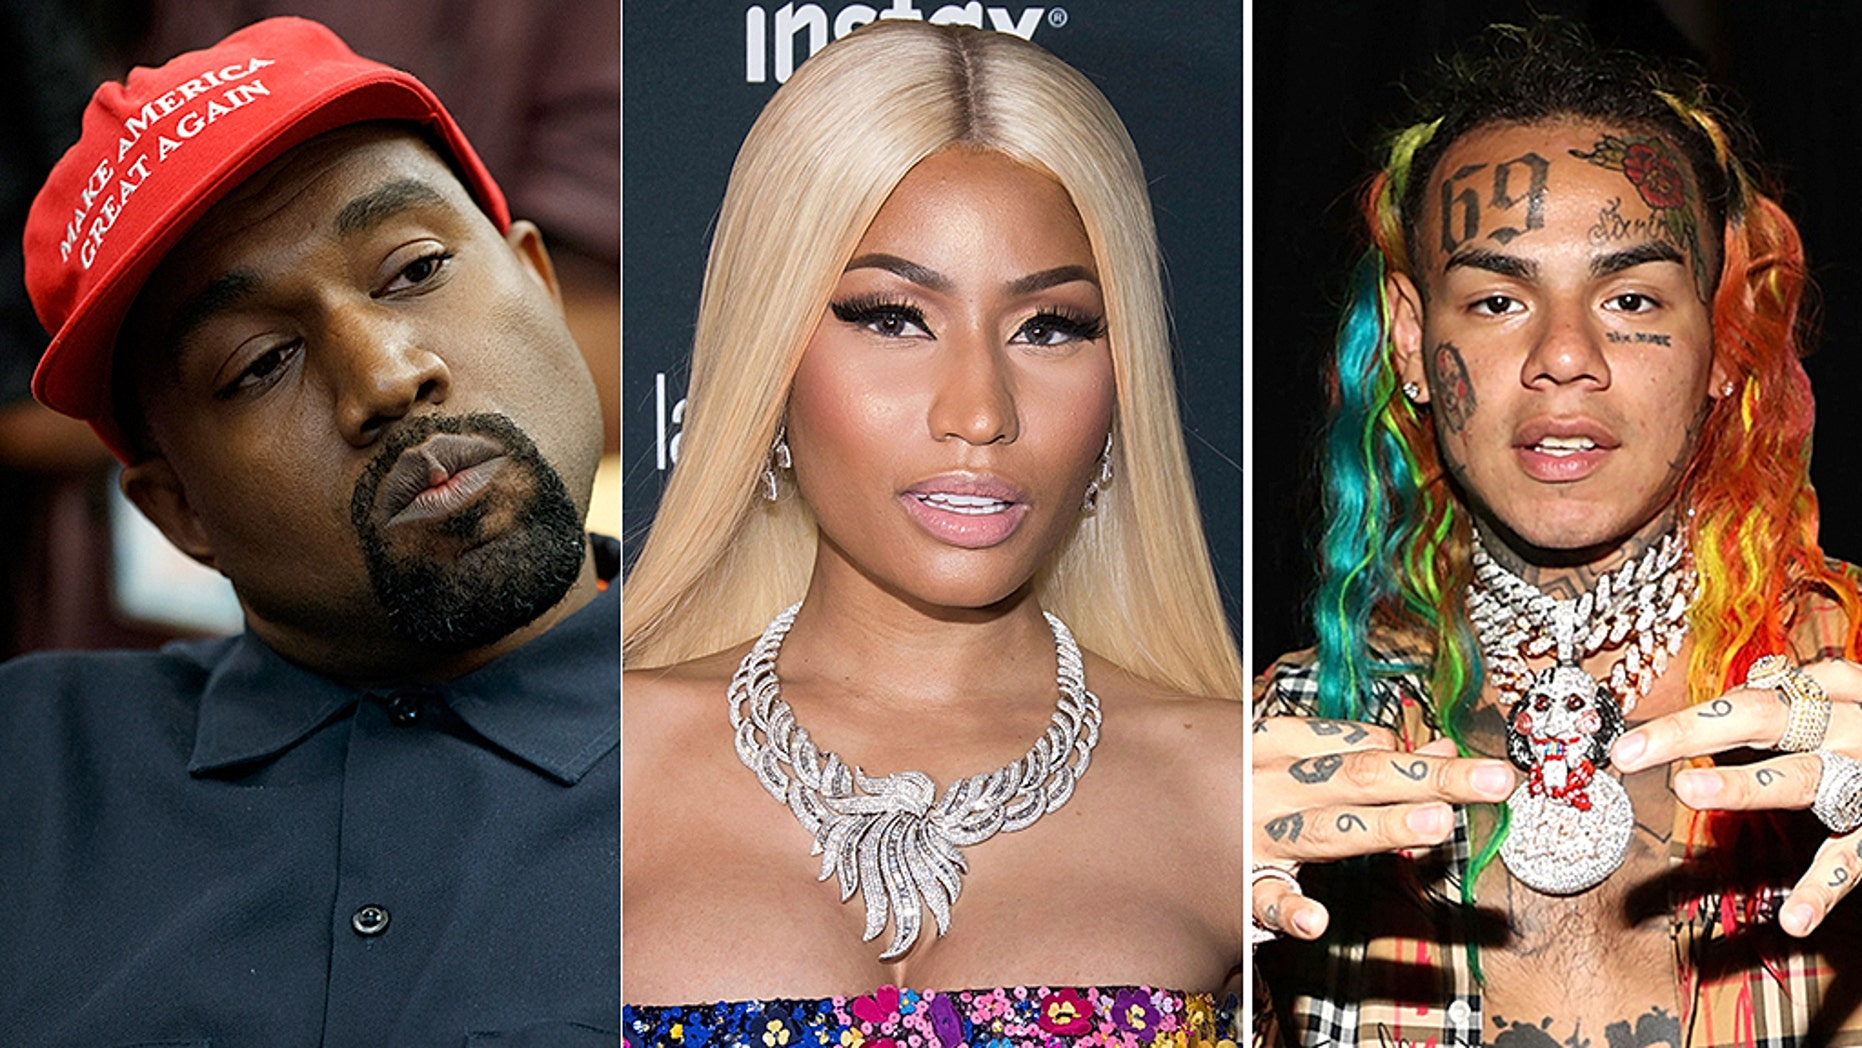 Nicki Minaj's Dressing Room Hit in Tekashi 6ix9ine Music Vid Shooting